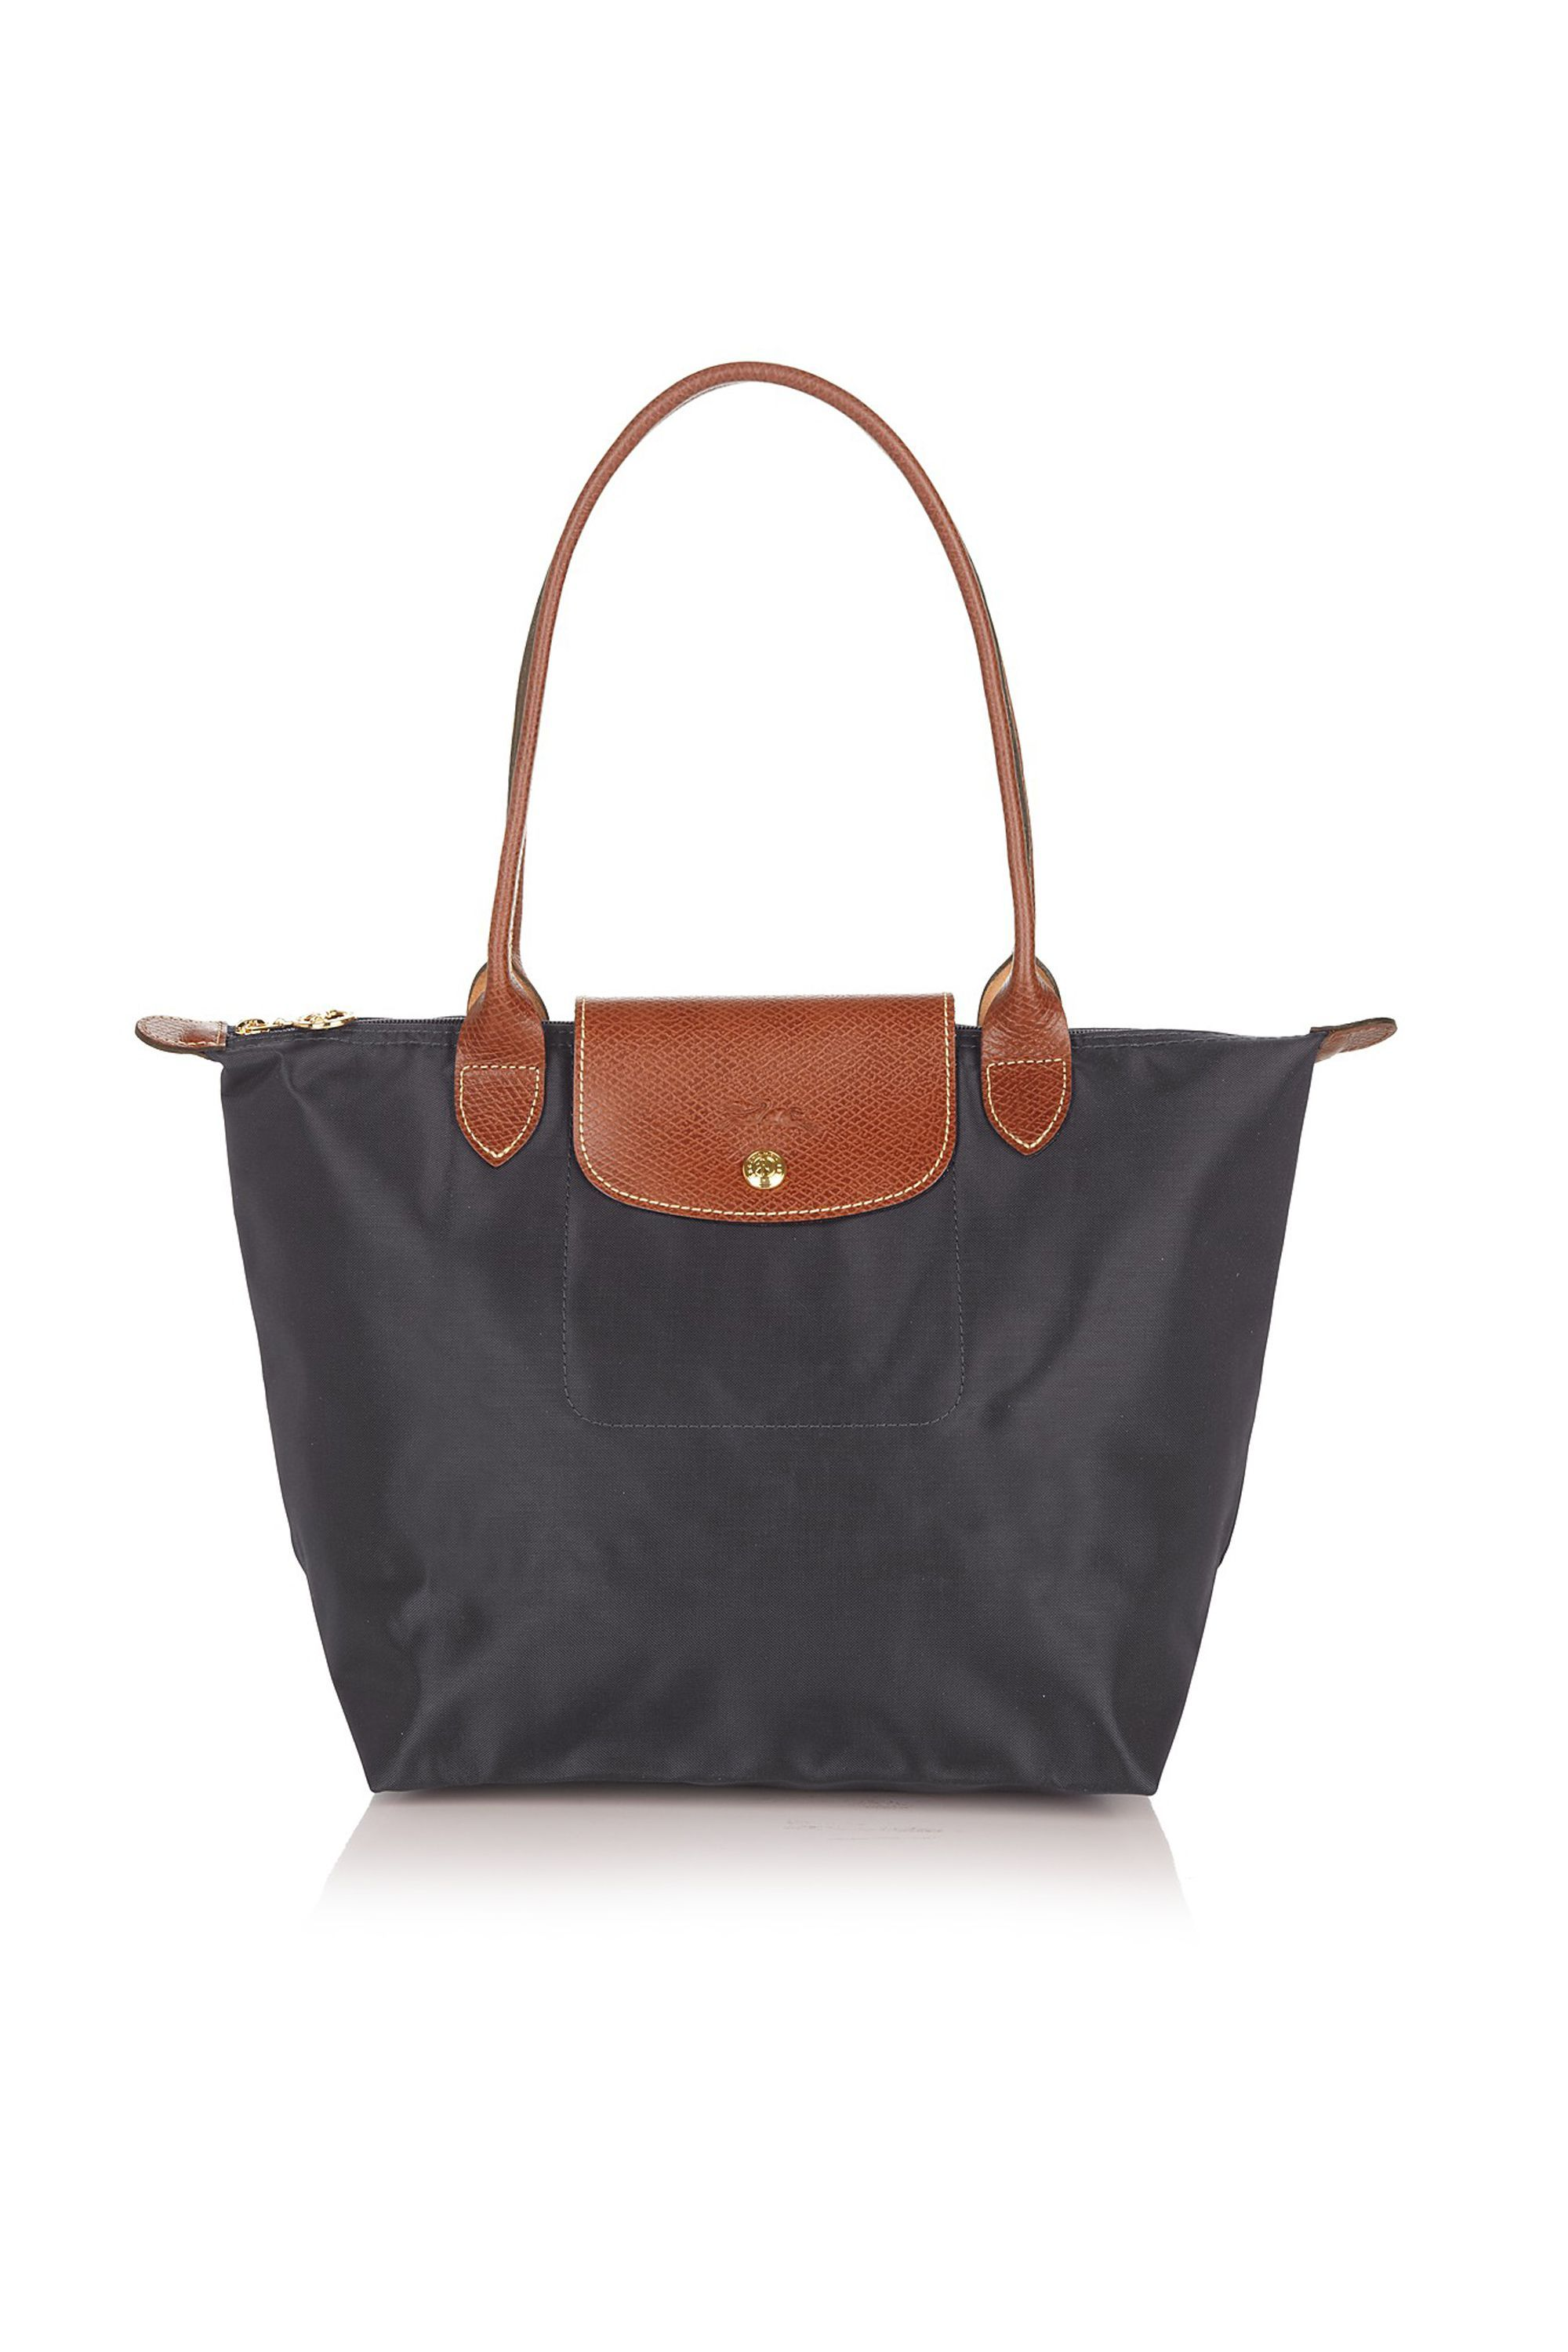 A No-Frills Shoulder Bag Longchamp Bloomingdales $125.00 SHOP IT It may just be a newer version of the one you've had since high school, but that doesn't mean it's not grown-up enough to be your polished everyday bag.